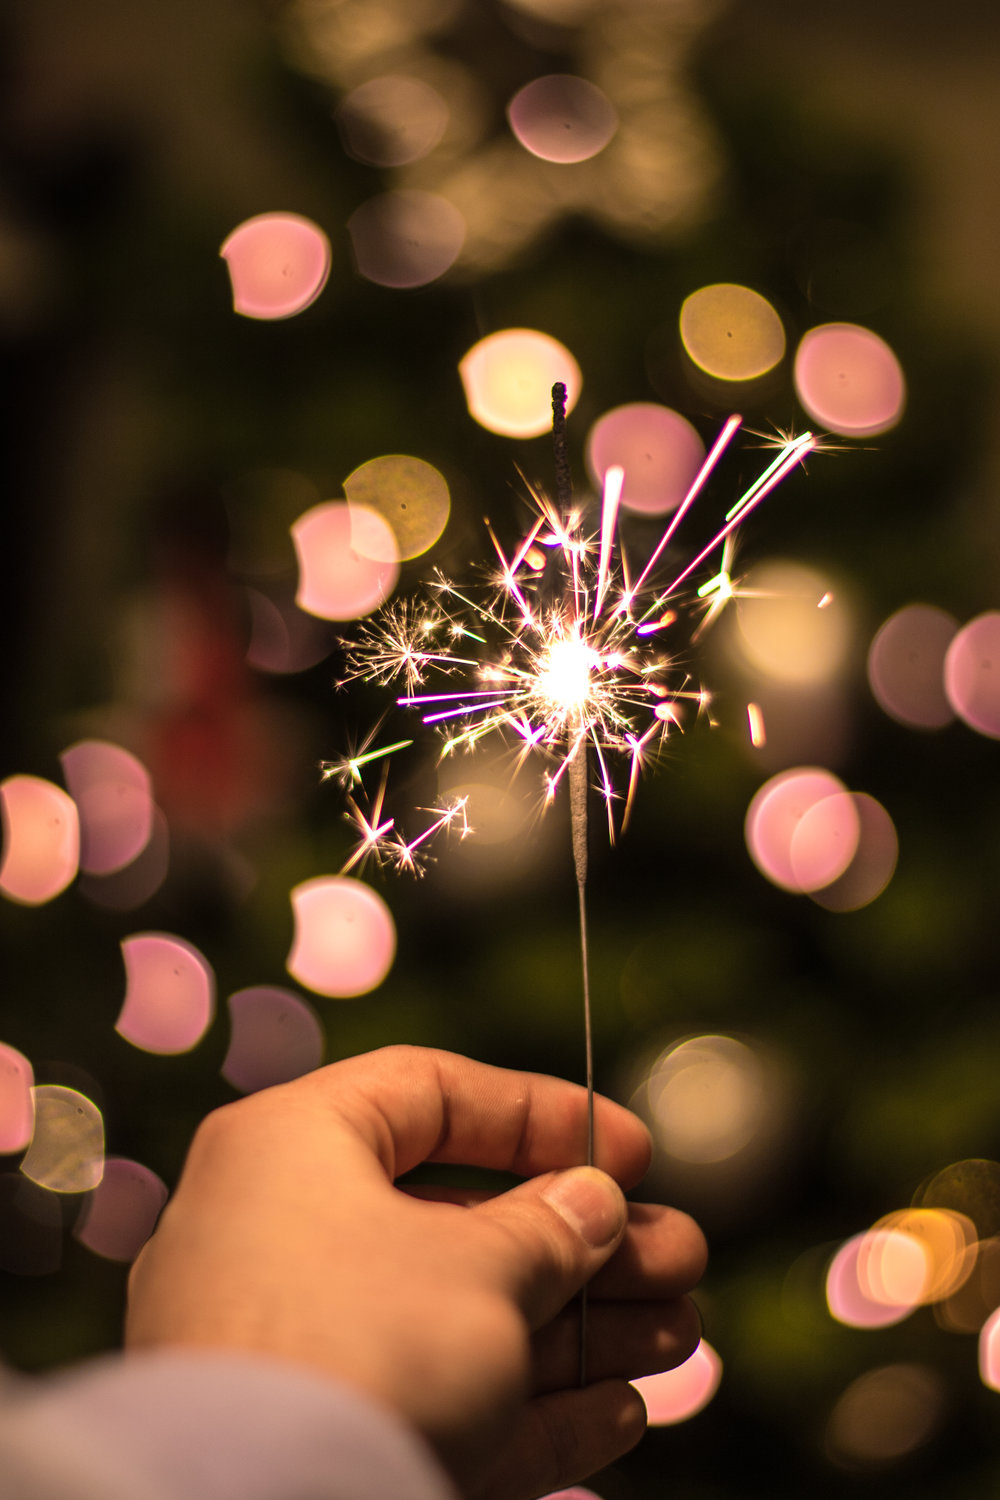 Find the spark and make magic together!